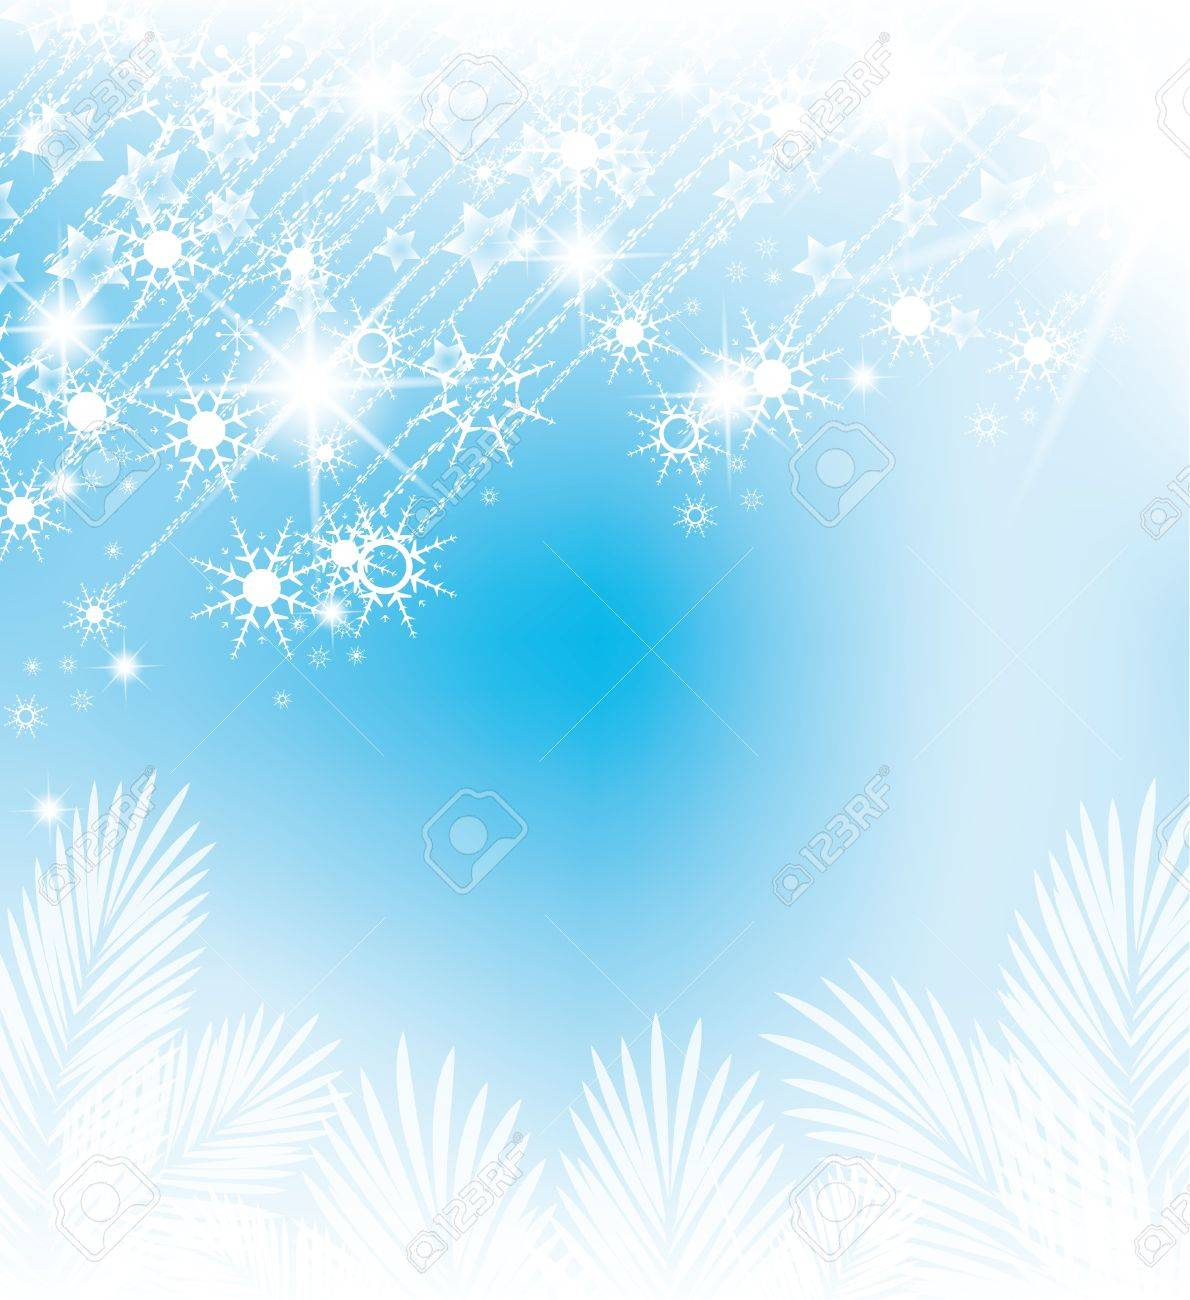 abstract background with falling snow flakes Stock Vector - 14553287